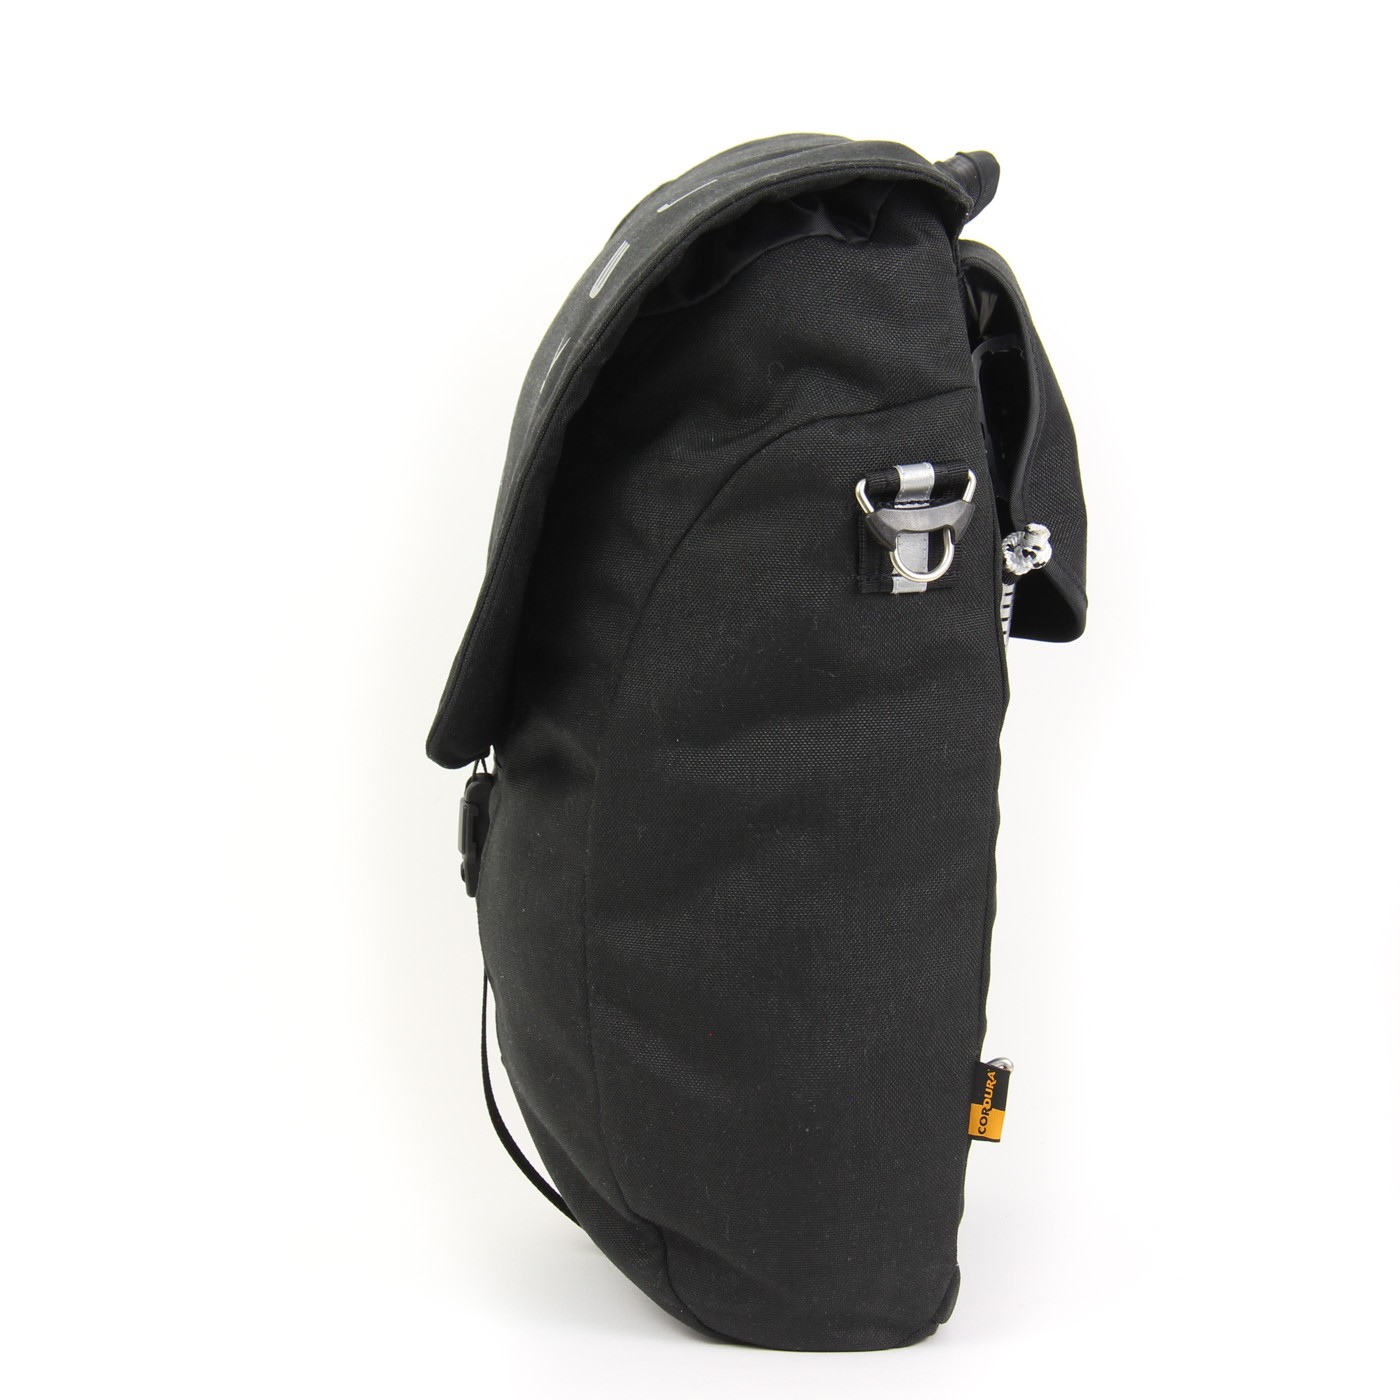 23a0062174b Commuting bike pannier for laptops from Arkel